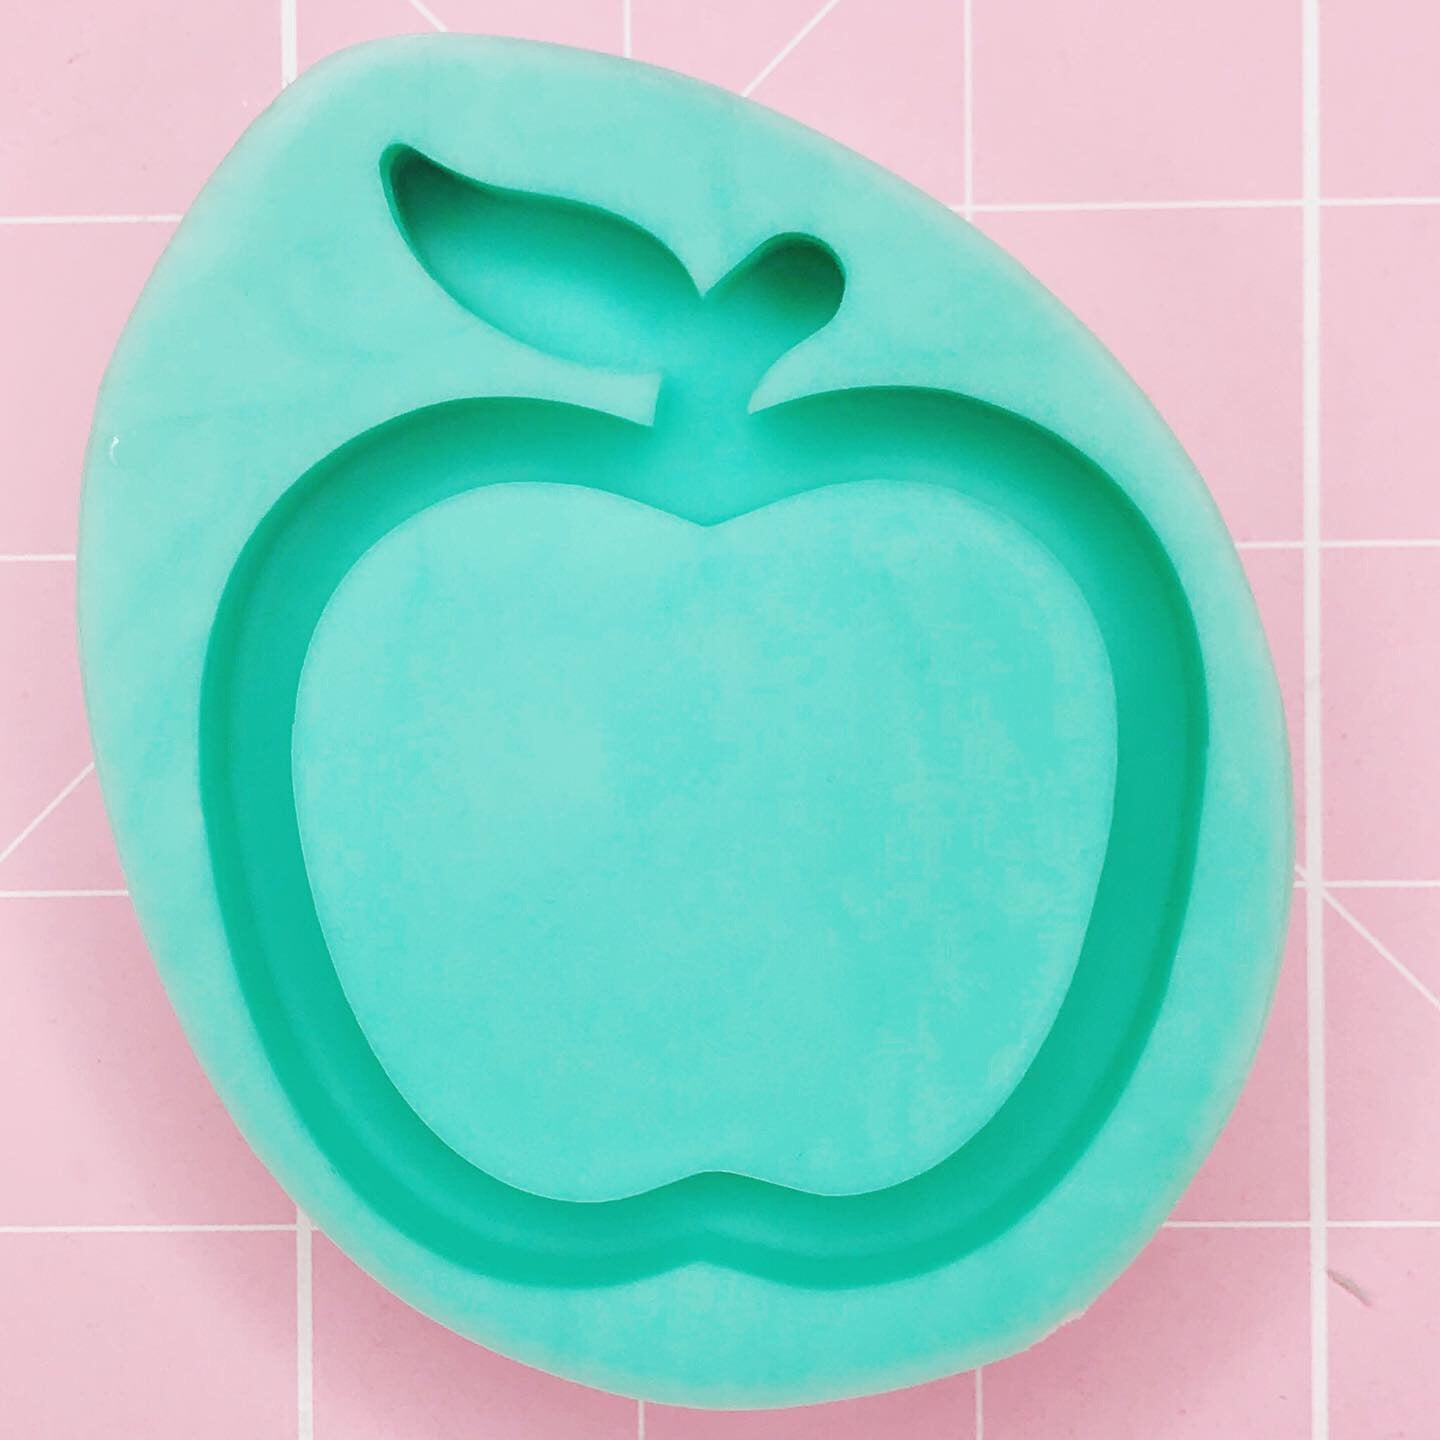 Small Mold - Apple (Backed Shaker) - Chala Atelier & Supplies